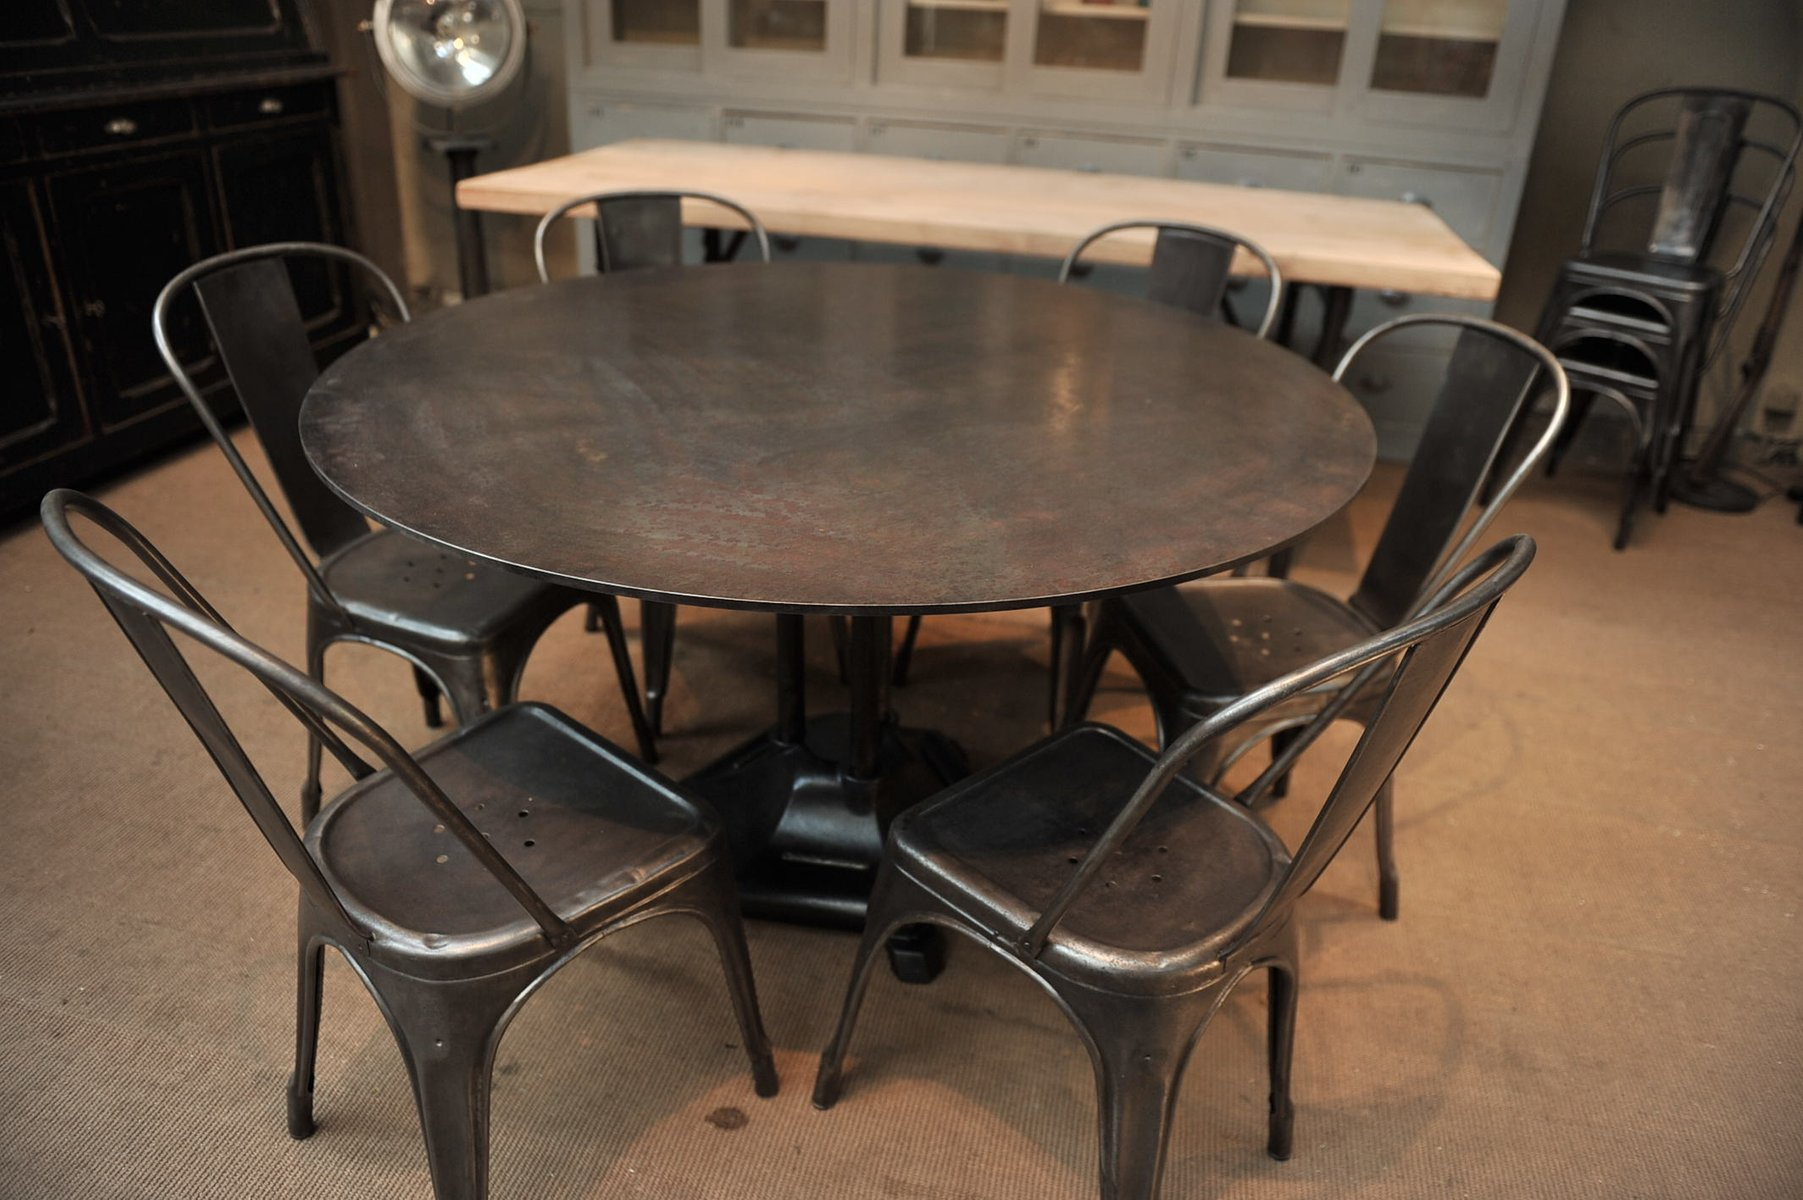 table de salle manger ronde industrielle en fer france 1930s en vente sur pamono. Black Bedroom Furniture Sets. Home Design Ideas